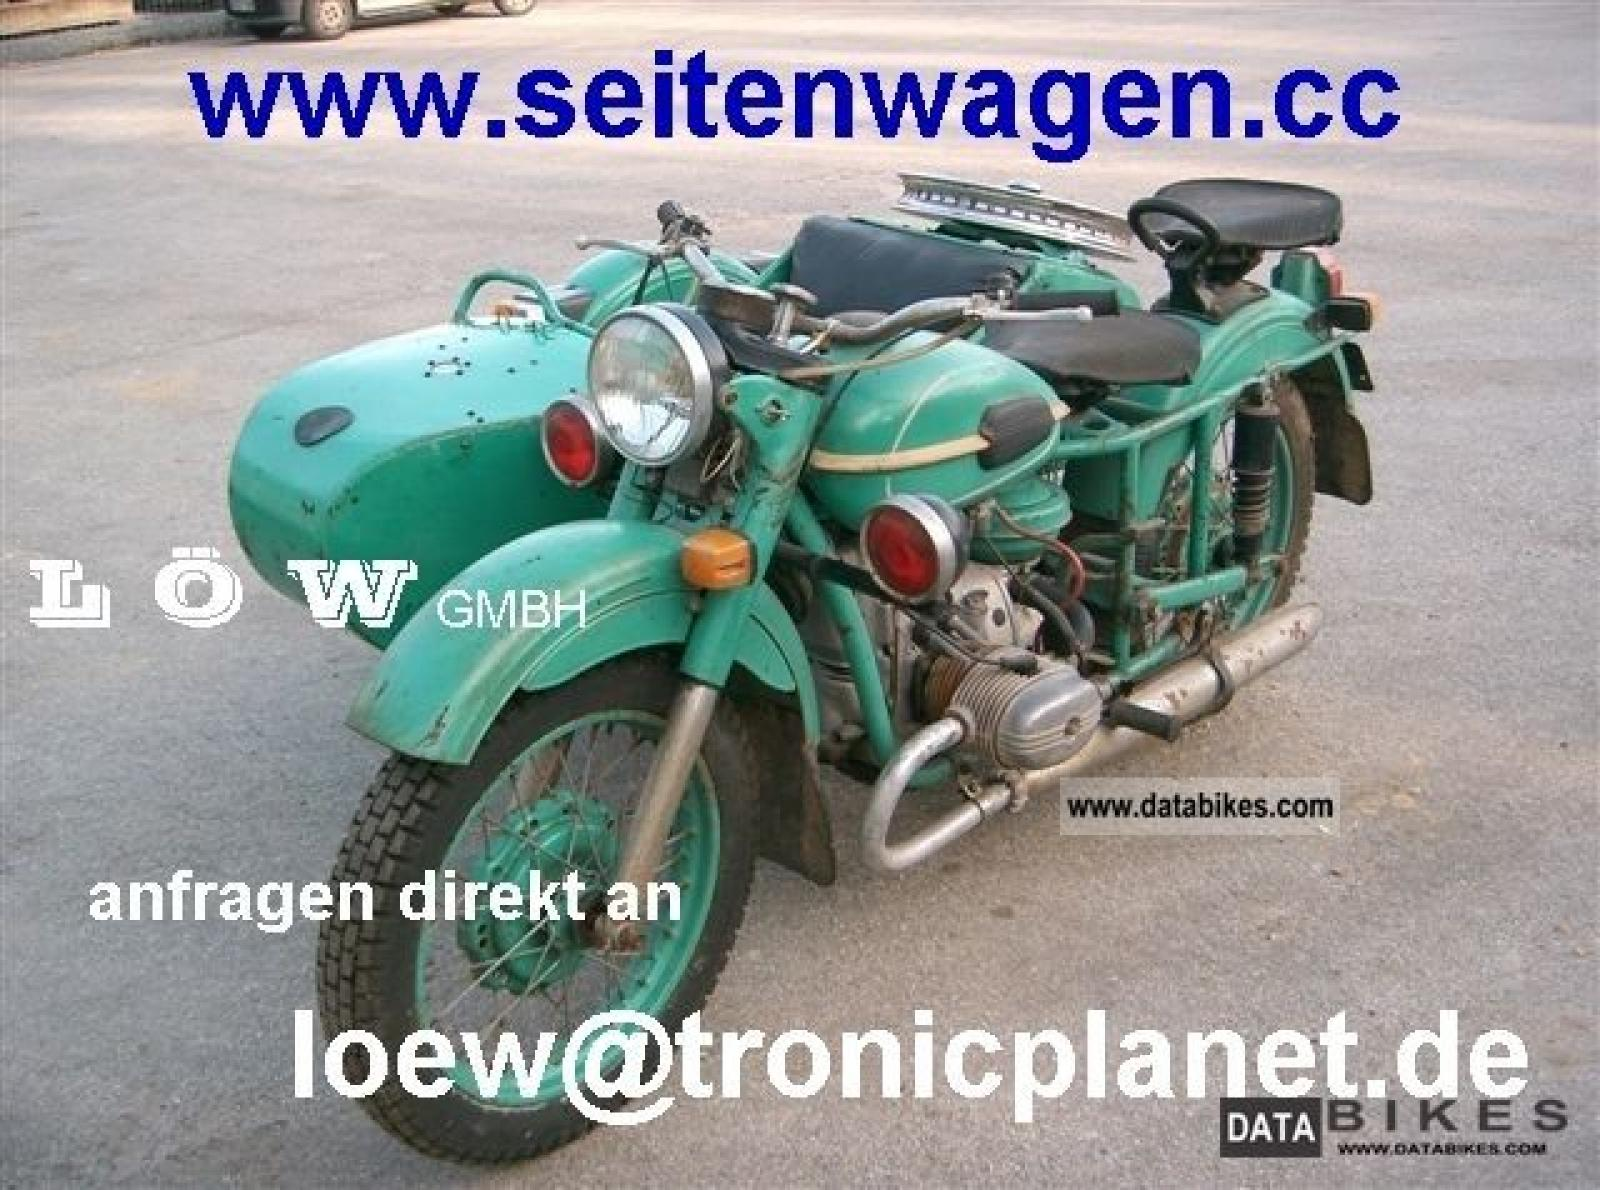 1980 Ural M-63 (with sidecar) #2